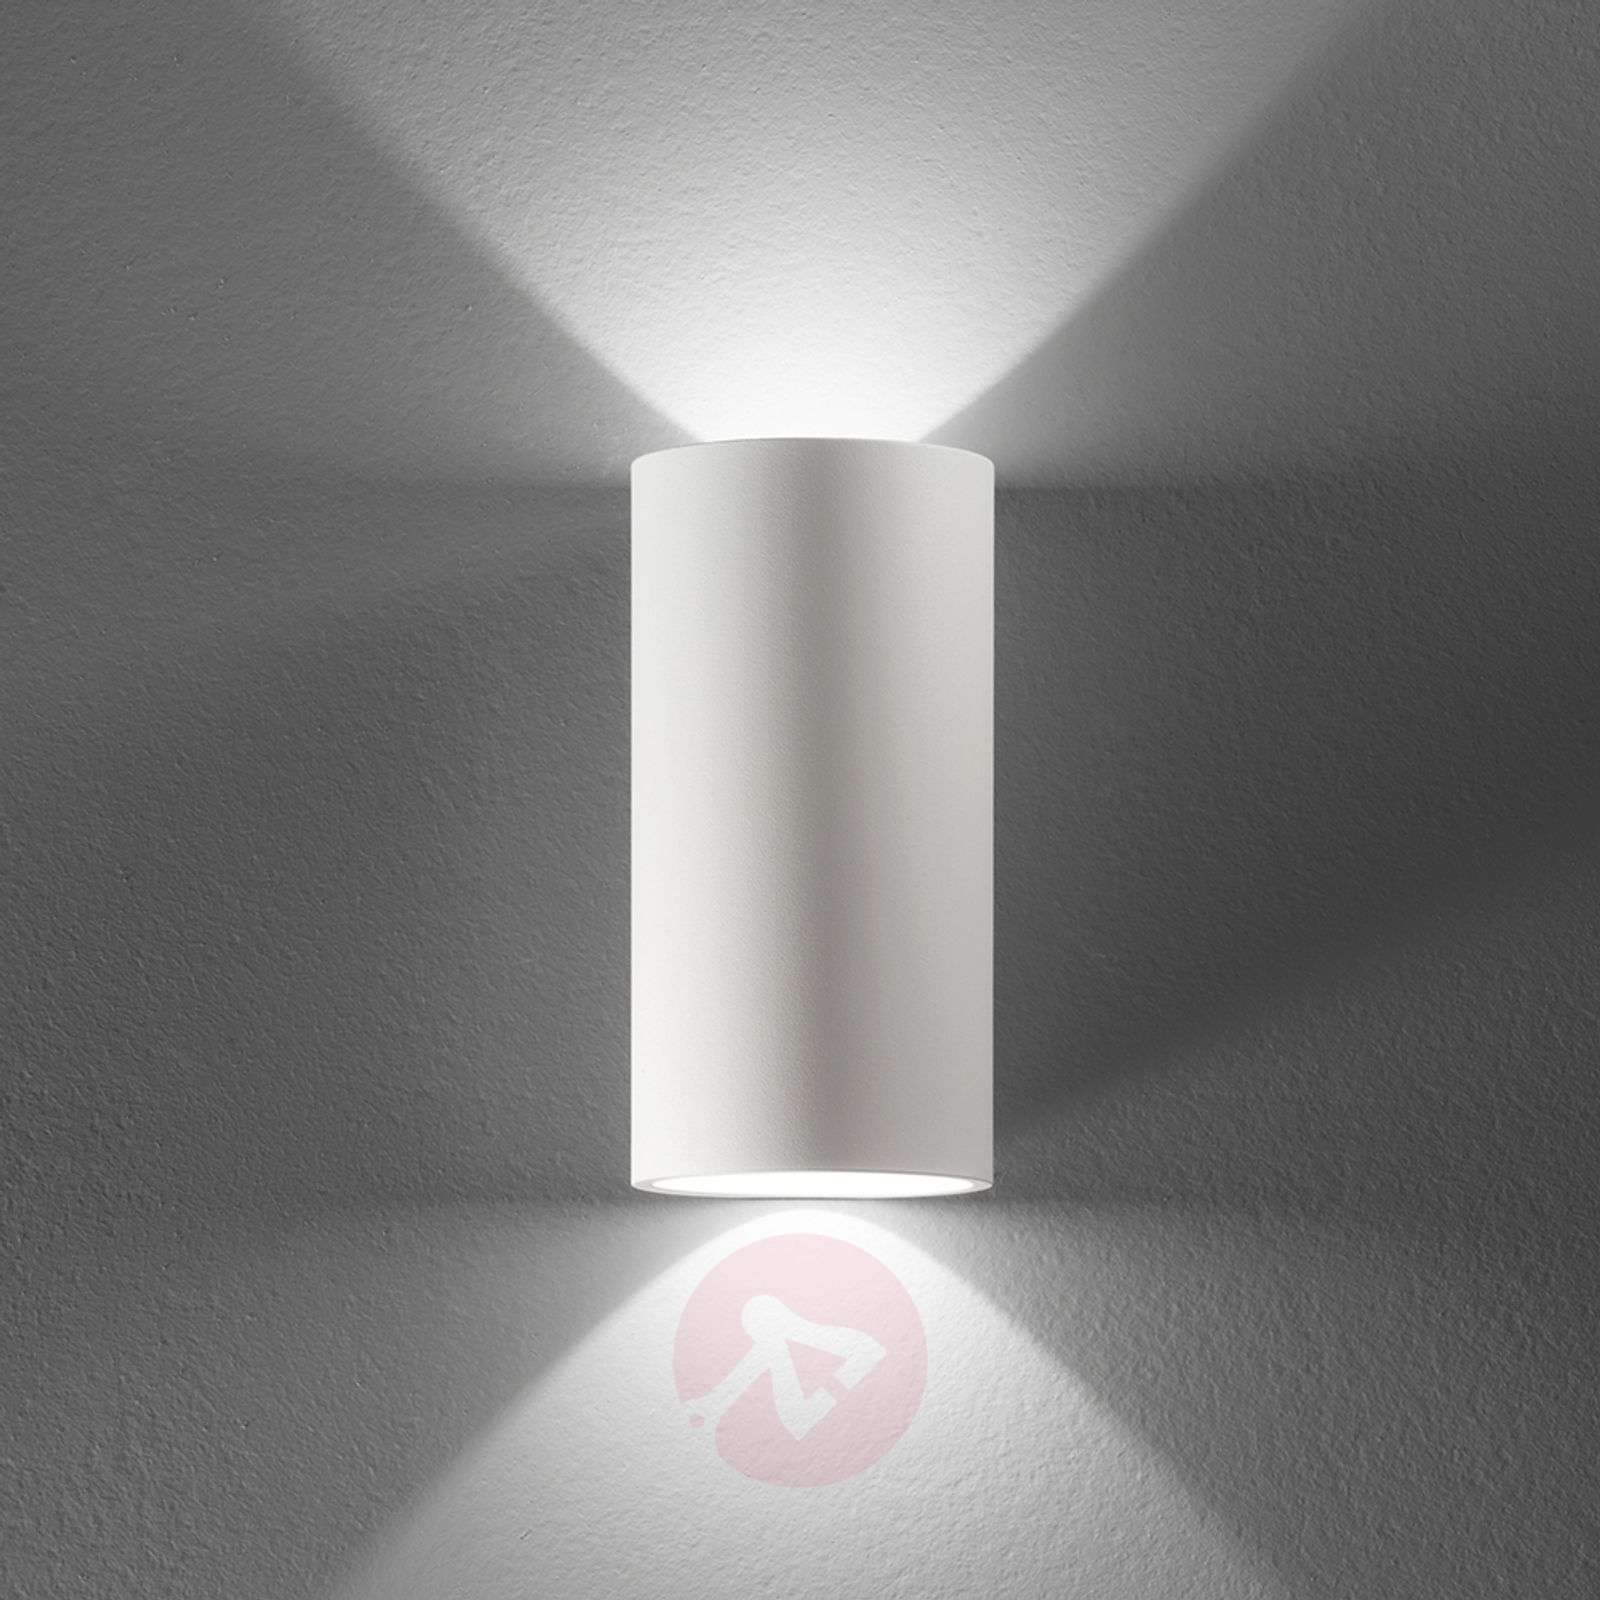 Tubo LED outdoor wall light with dual emission-3023121-01